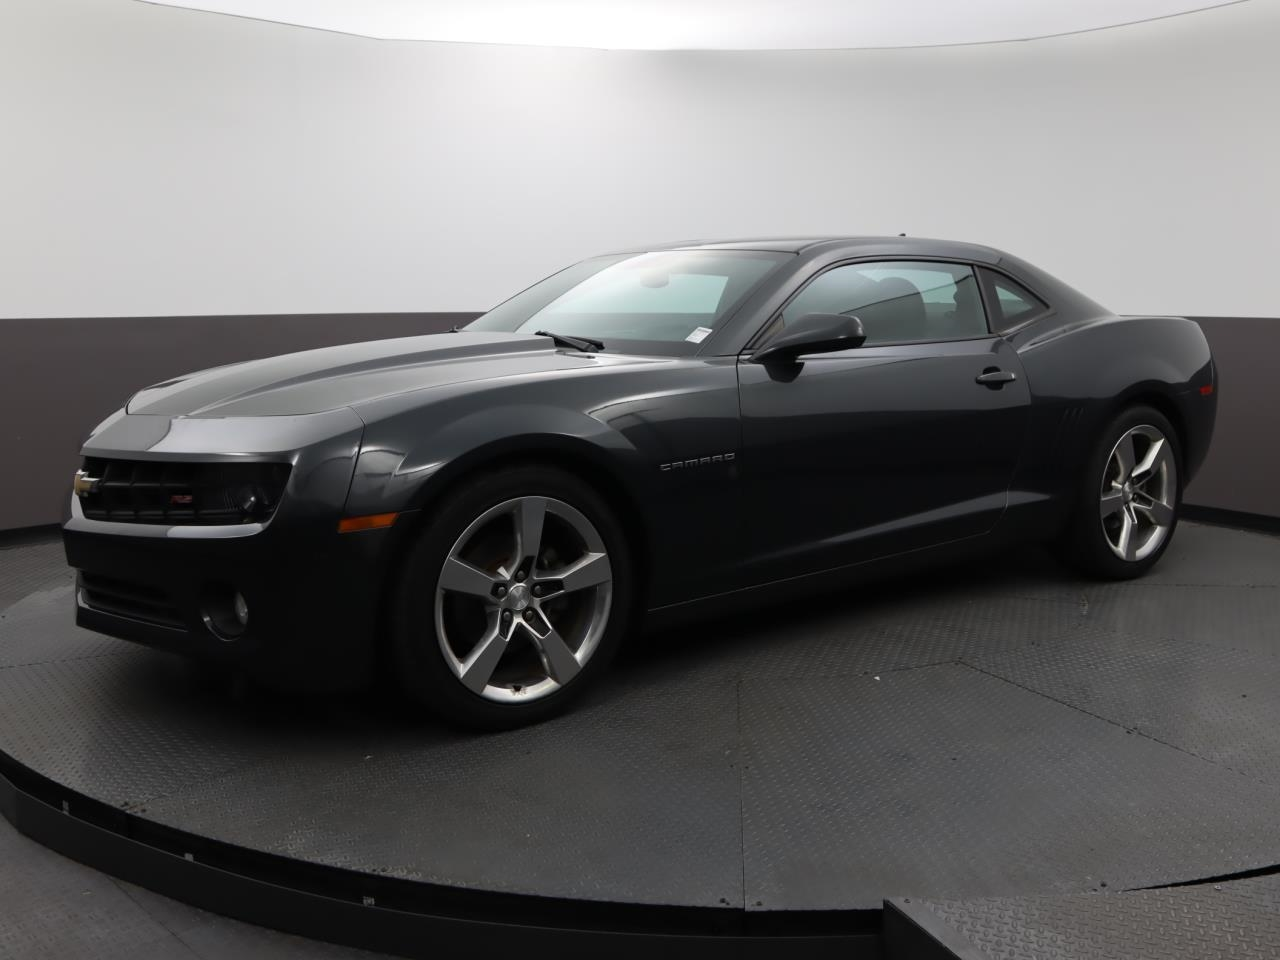 Used CHEVROLET CAMARO 2013 MARGATE LT